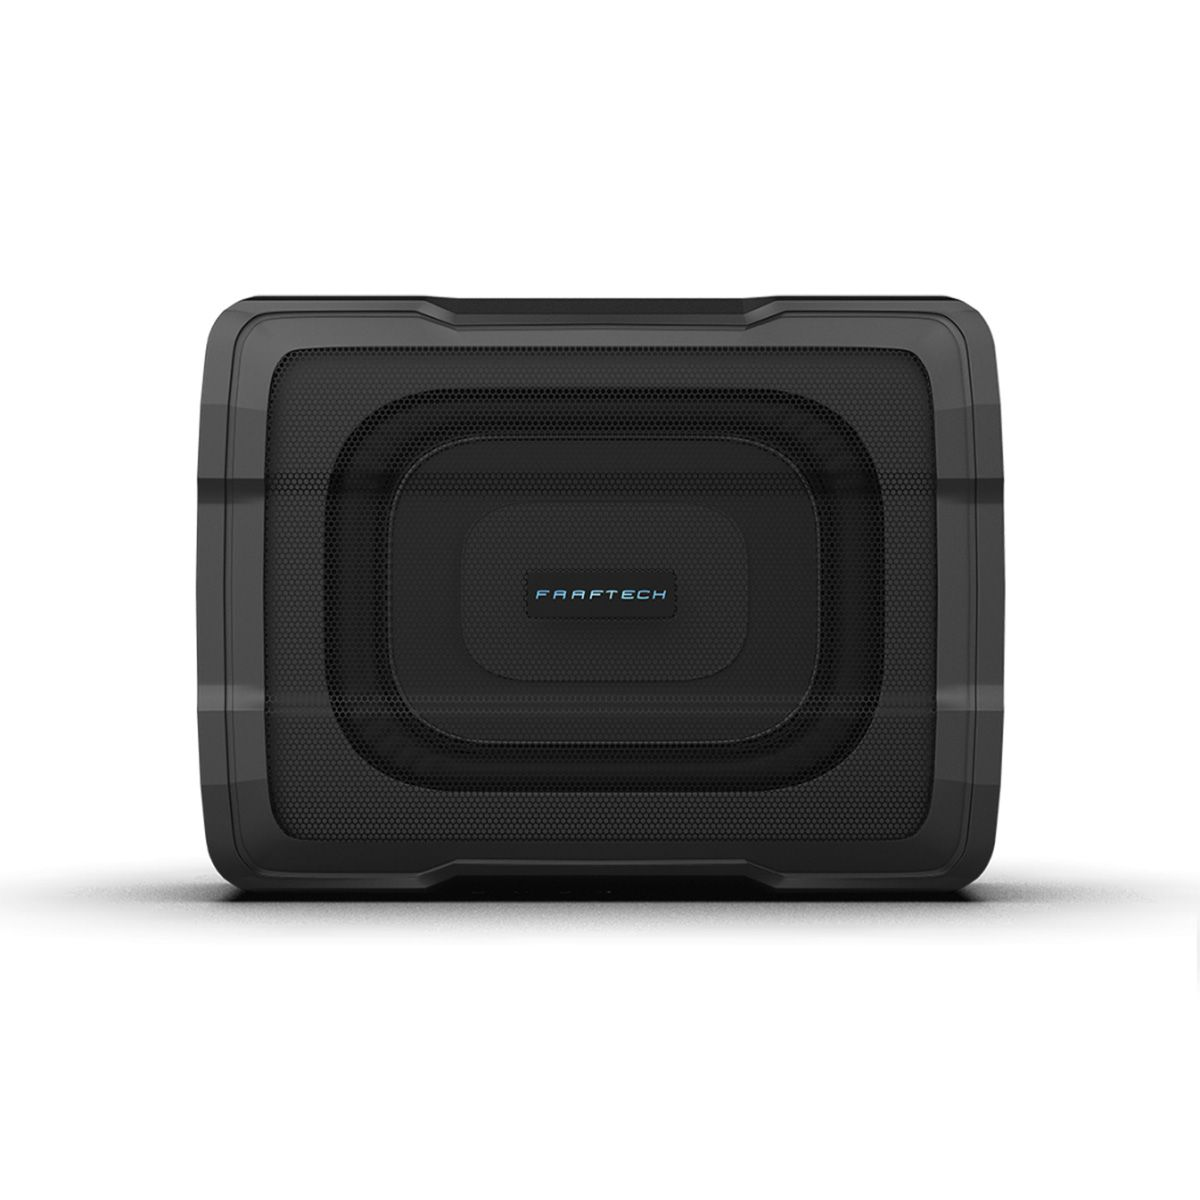 Subwoofer Ativo Plug and Play 100W RMS para Onix Plus 2020 FT-SW68 GM2 Faaftech